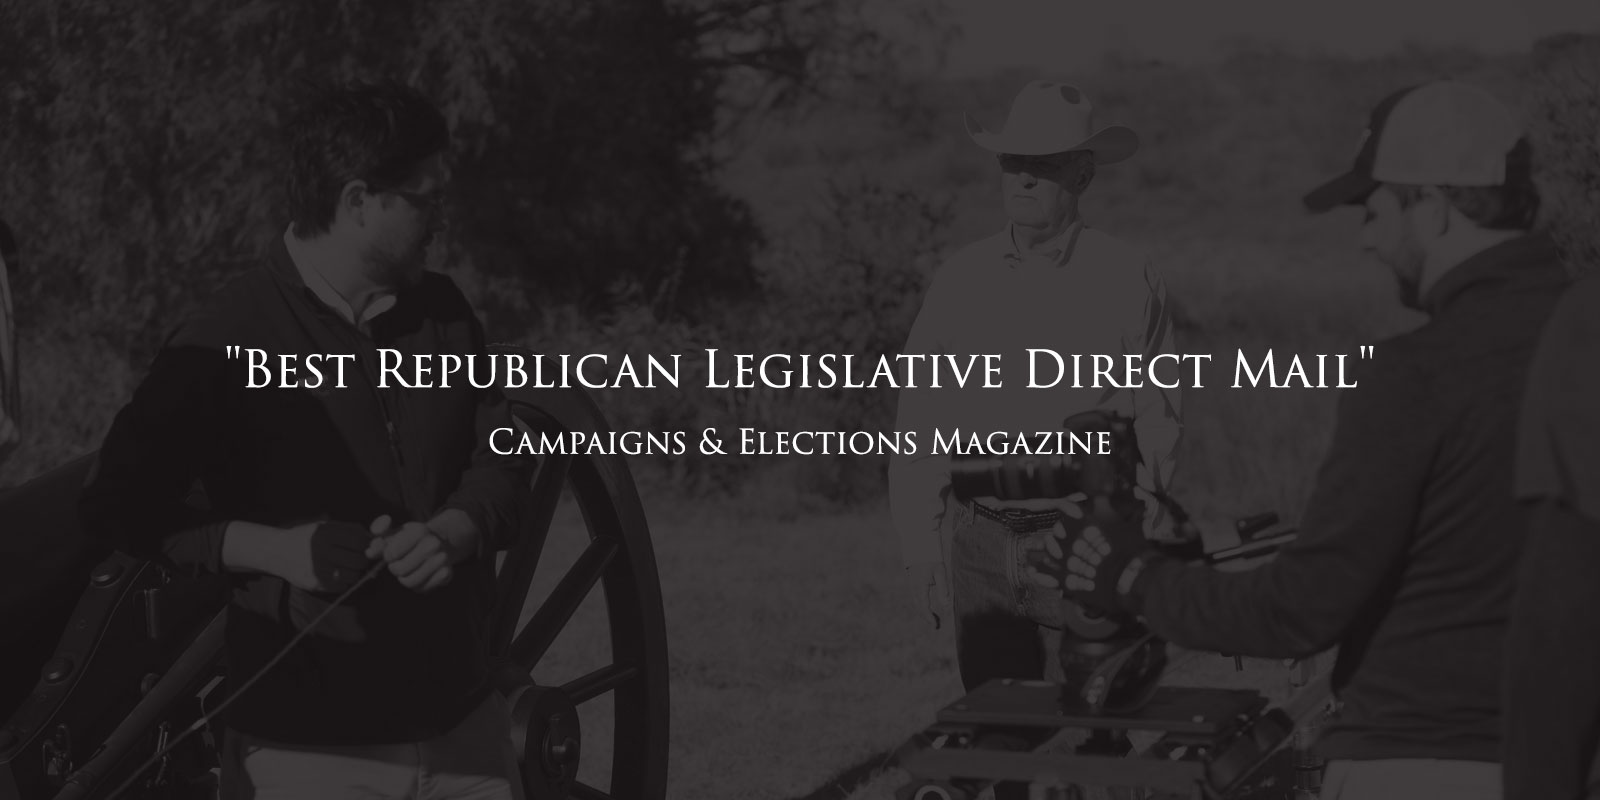 Best Republican Legislative Direct Mail